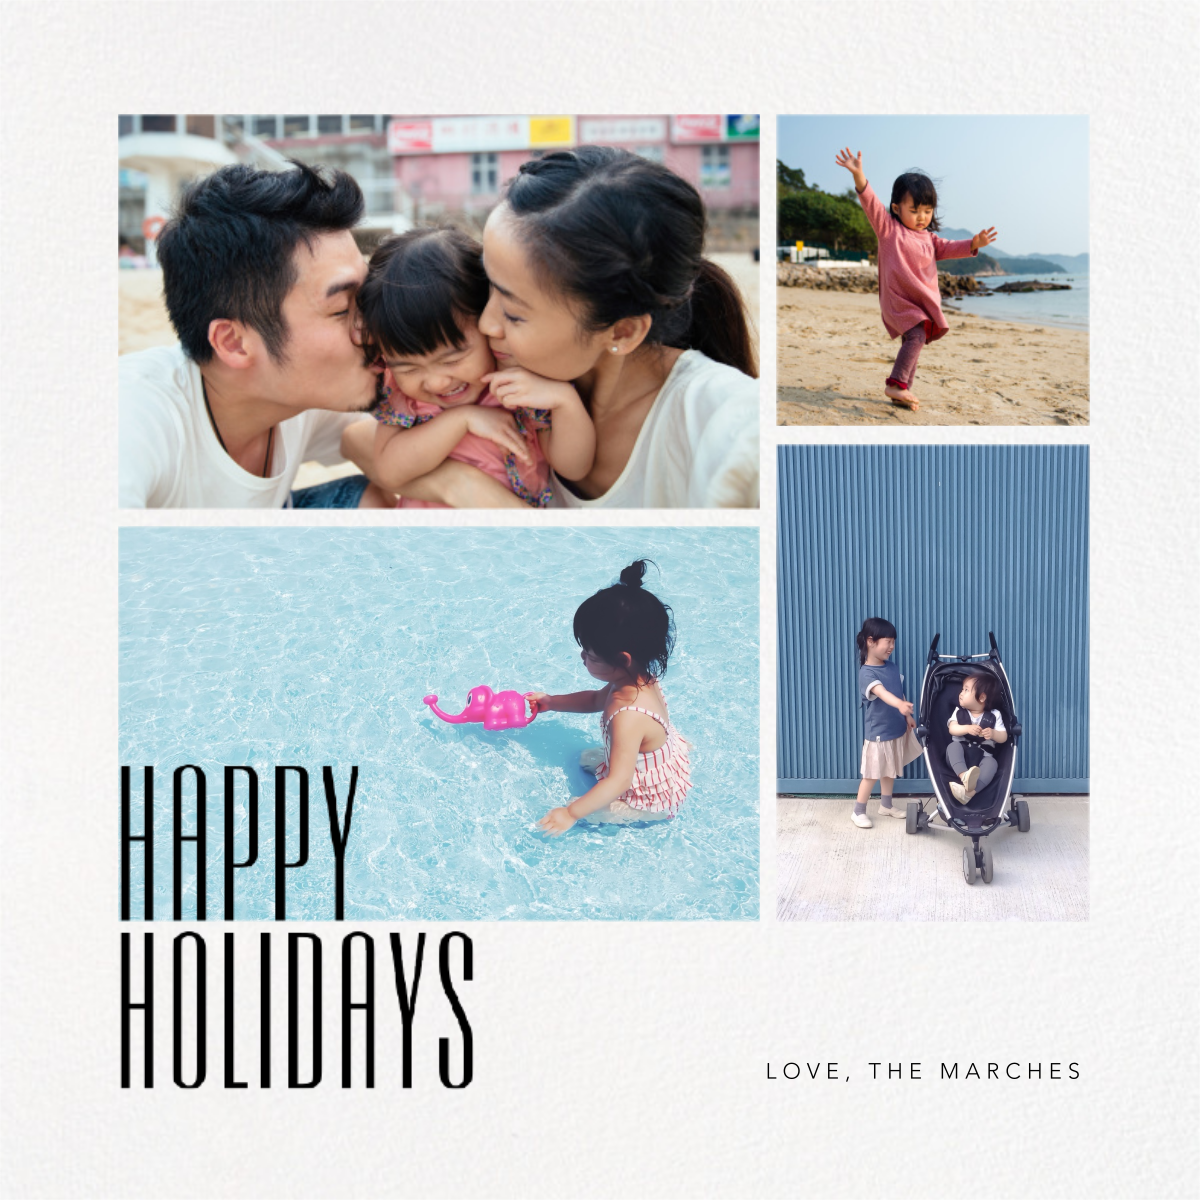 Holidays Gallery (Square) - Paperless Post